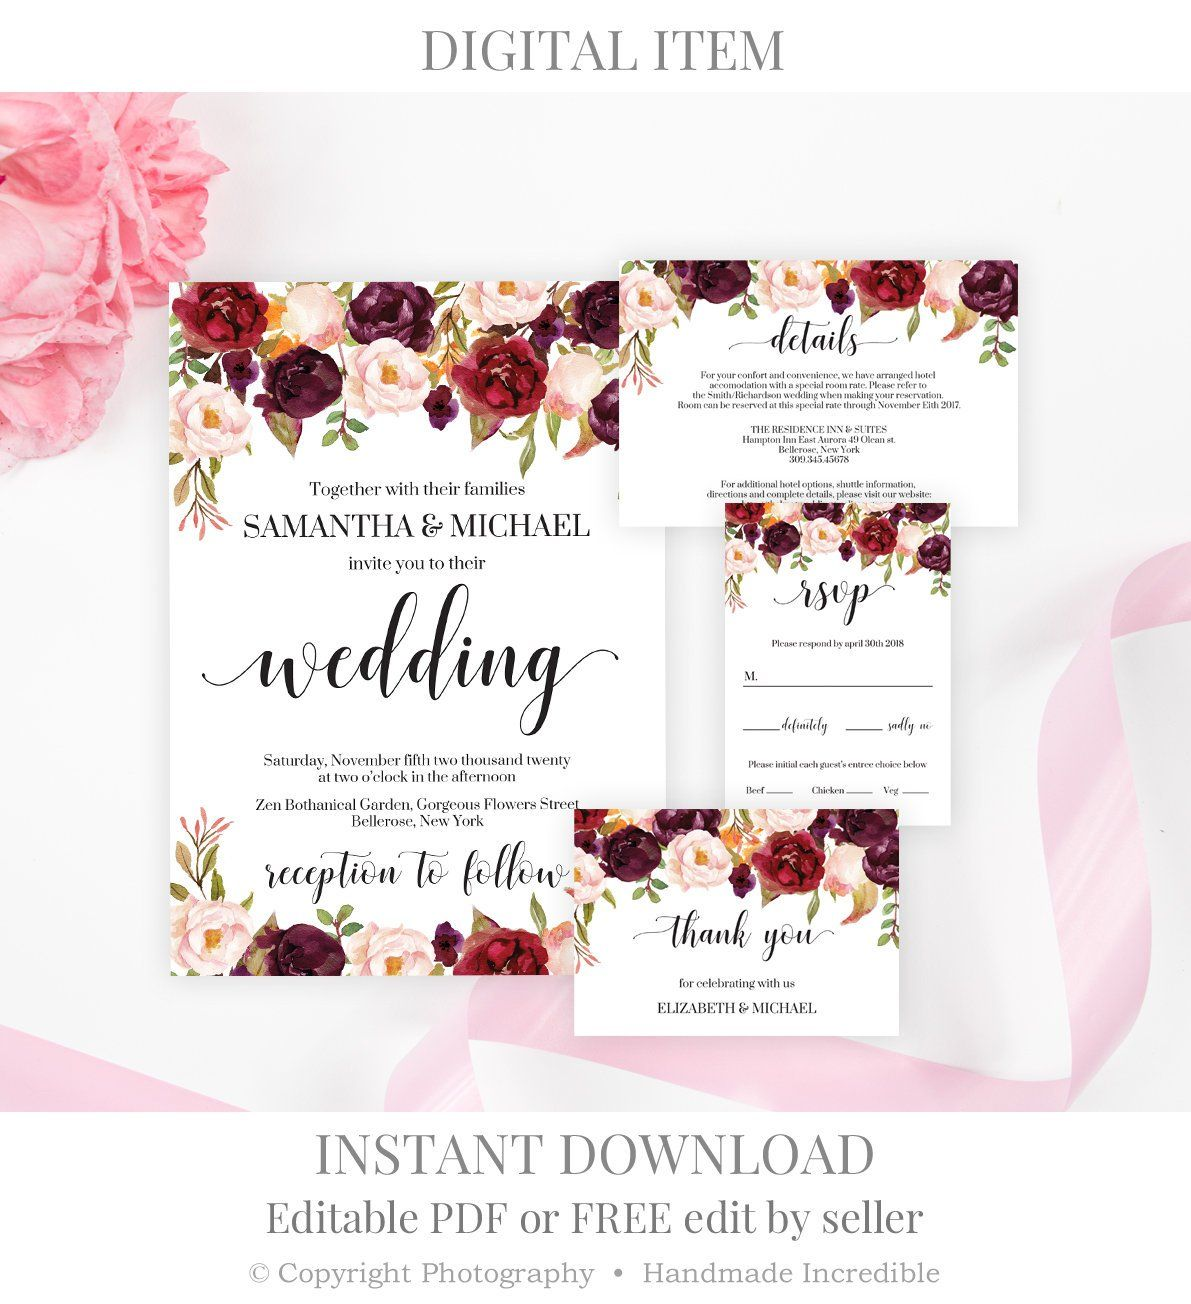 Burgundy Wedding Invitation Set Template Printable Floral Wedding Invi Wedding Invitations Digital Wedding Invitations Wedding Invitations Printable Templates